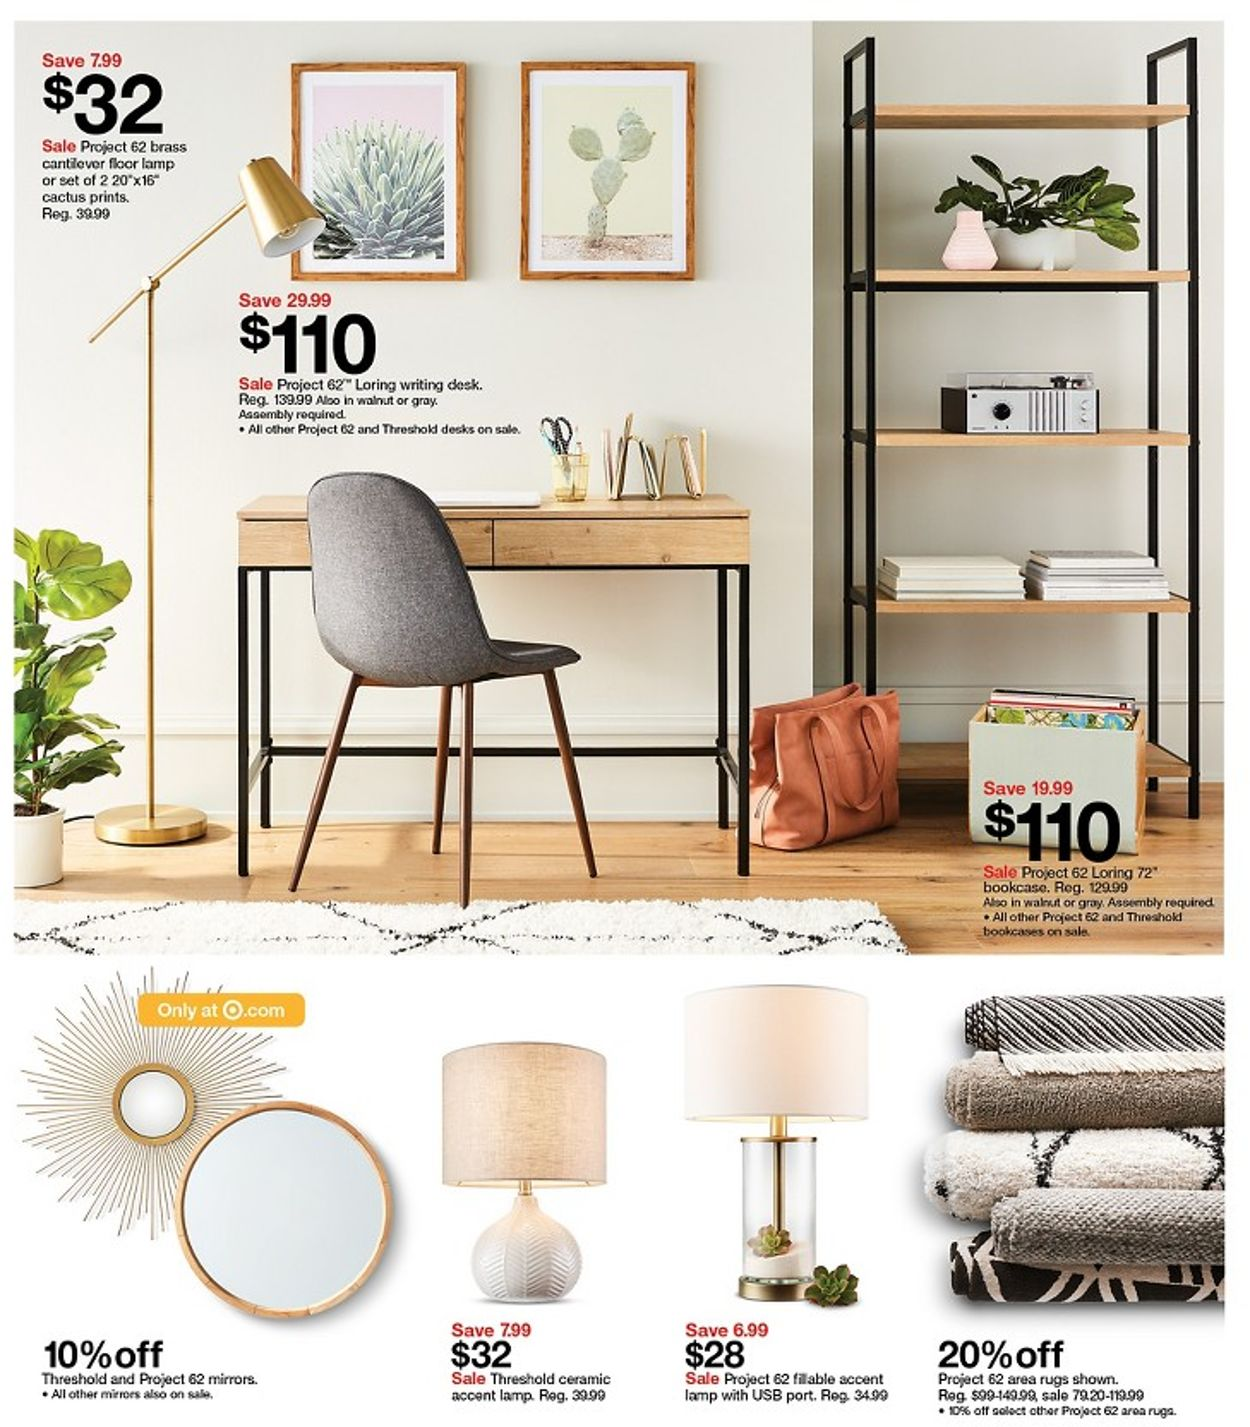 Target Current weekly ad 47/47 - 47/47/2479 [47] - frequent-ads.com